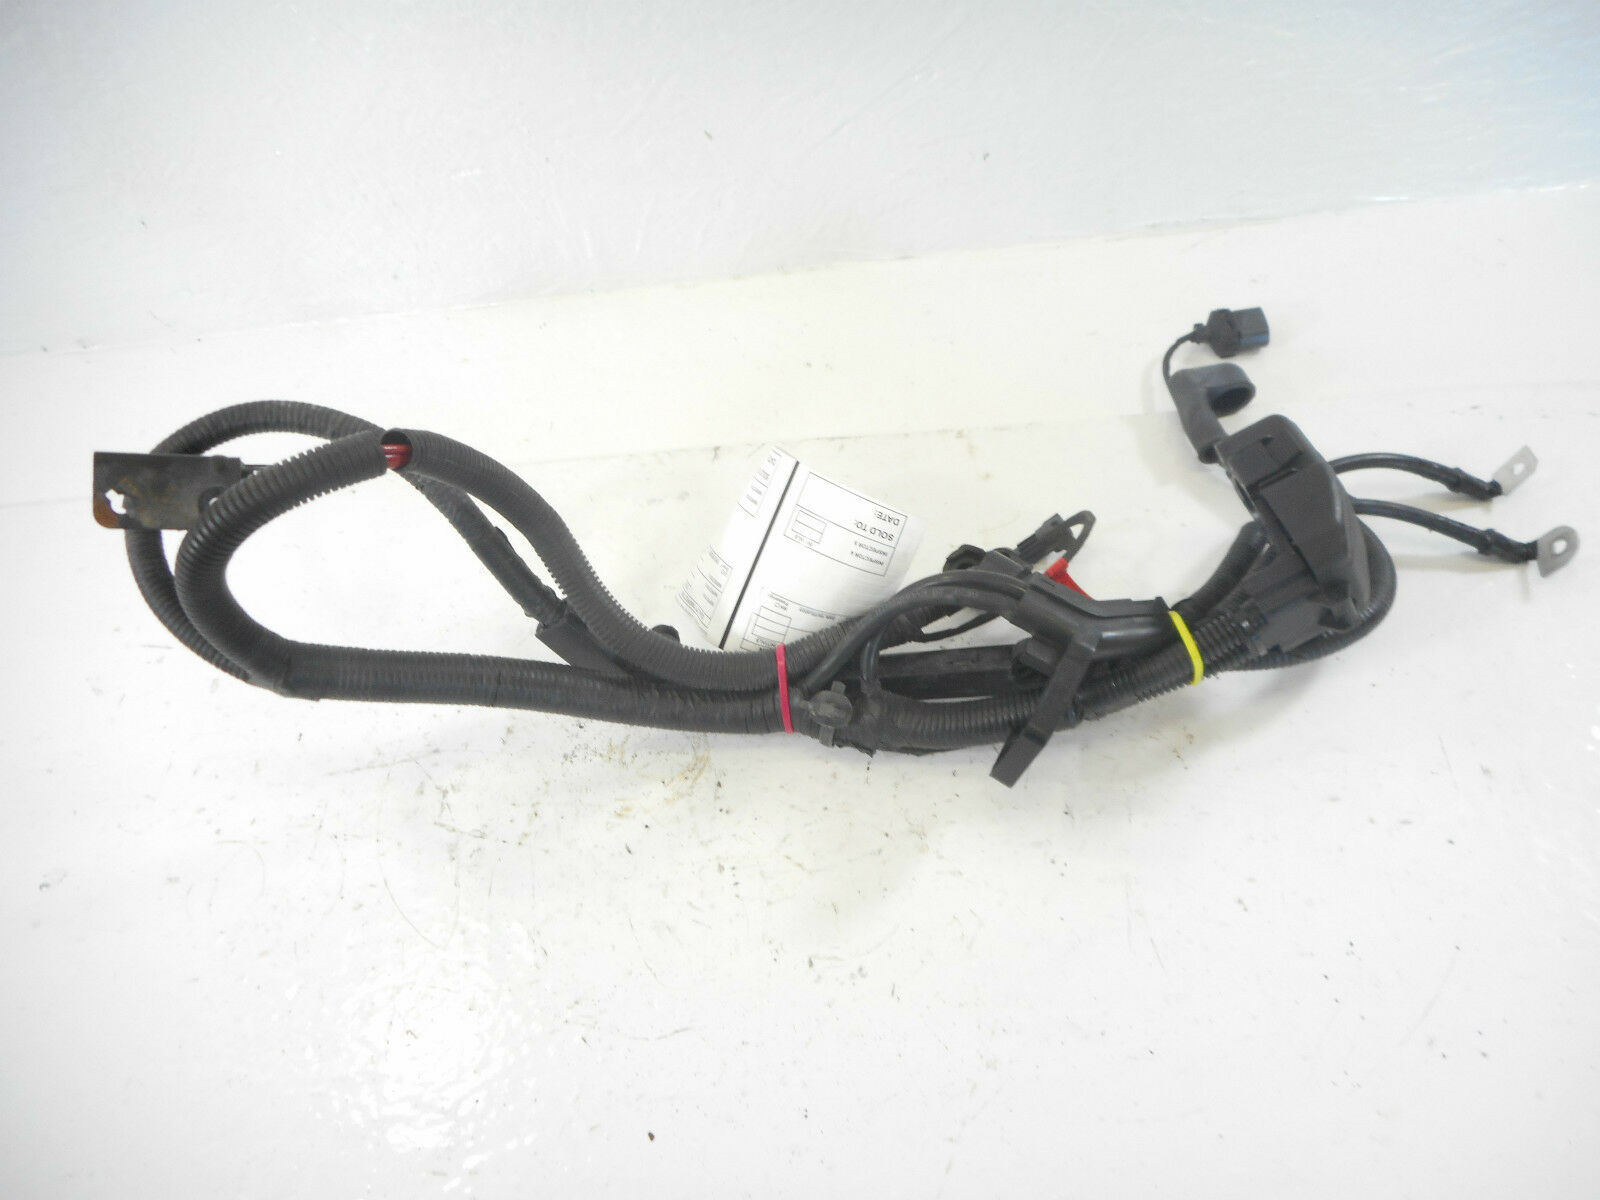 s l1600 2012 hyundai elantra hybrid 2 0l battery positive cable & wiring 2012 hyundai elantra wiring diagram at love-stories.co